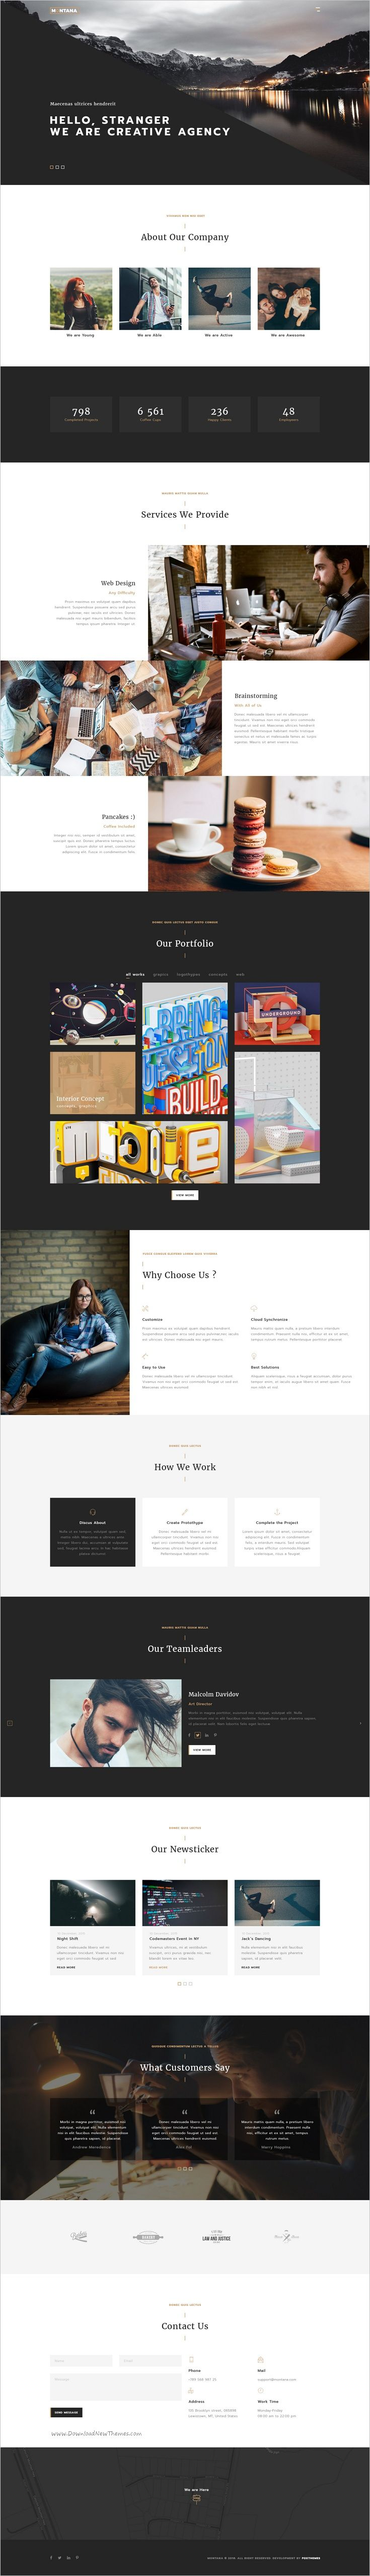 Montana is a modern and creative One Page #PSD Template for #Portfolio, #Agencies, Saas Websites download now➩ https://themeforest.net/item/montana-modern-and-creative-one-page-template/19184748?ref=Datasata